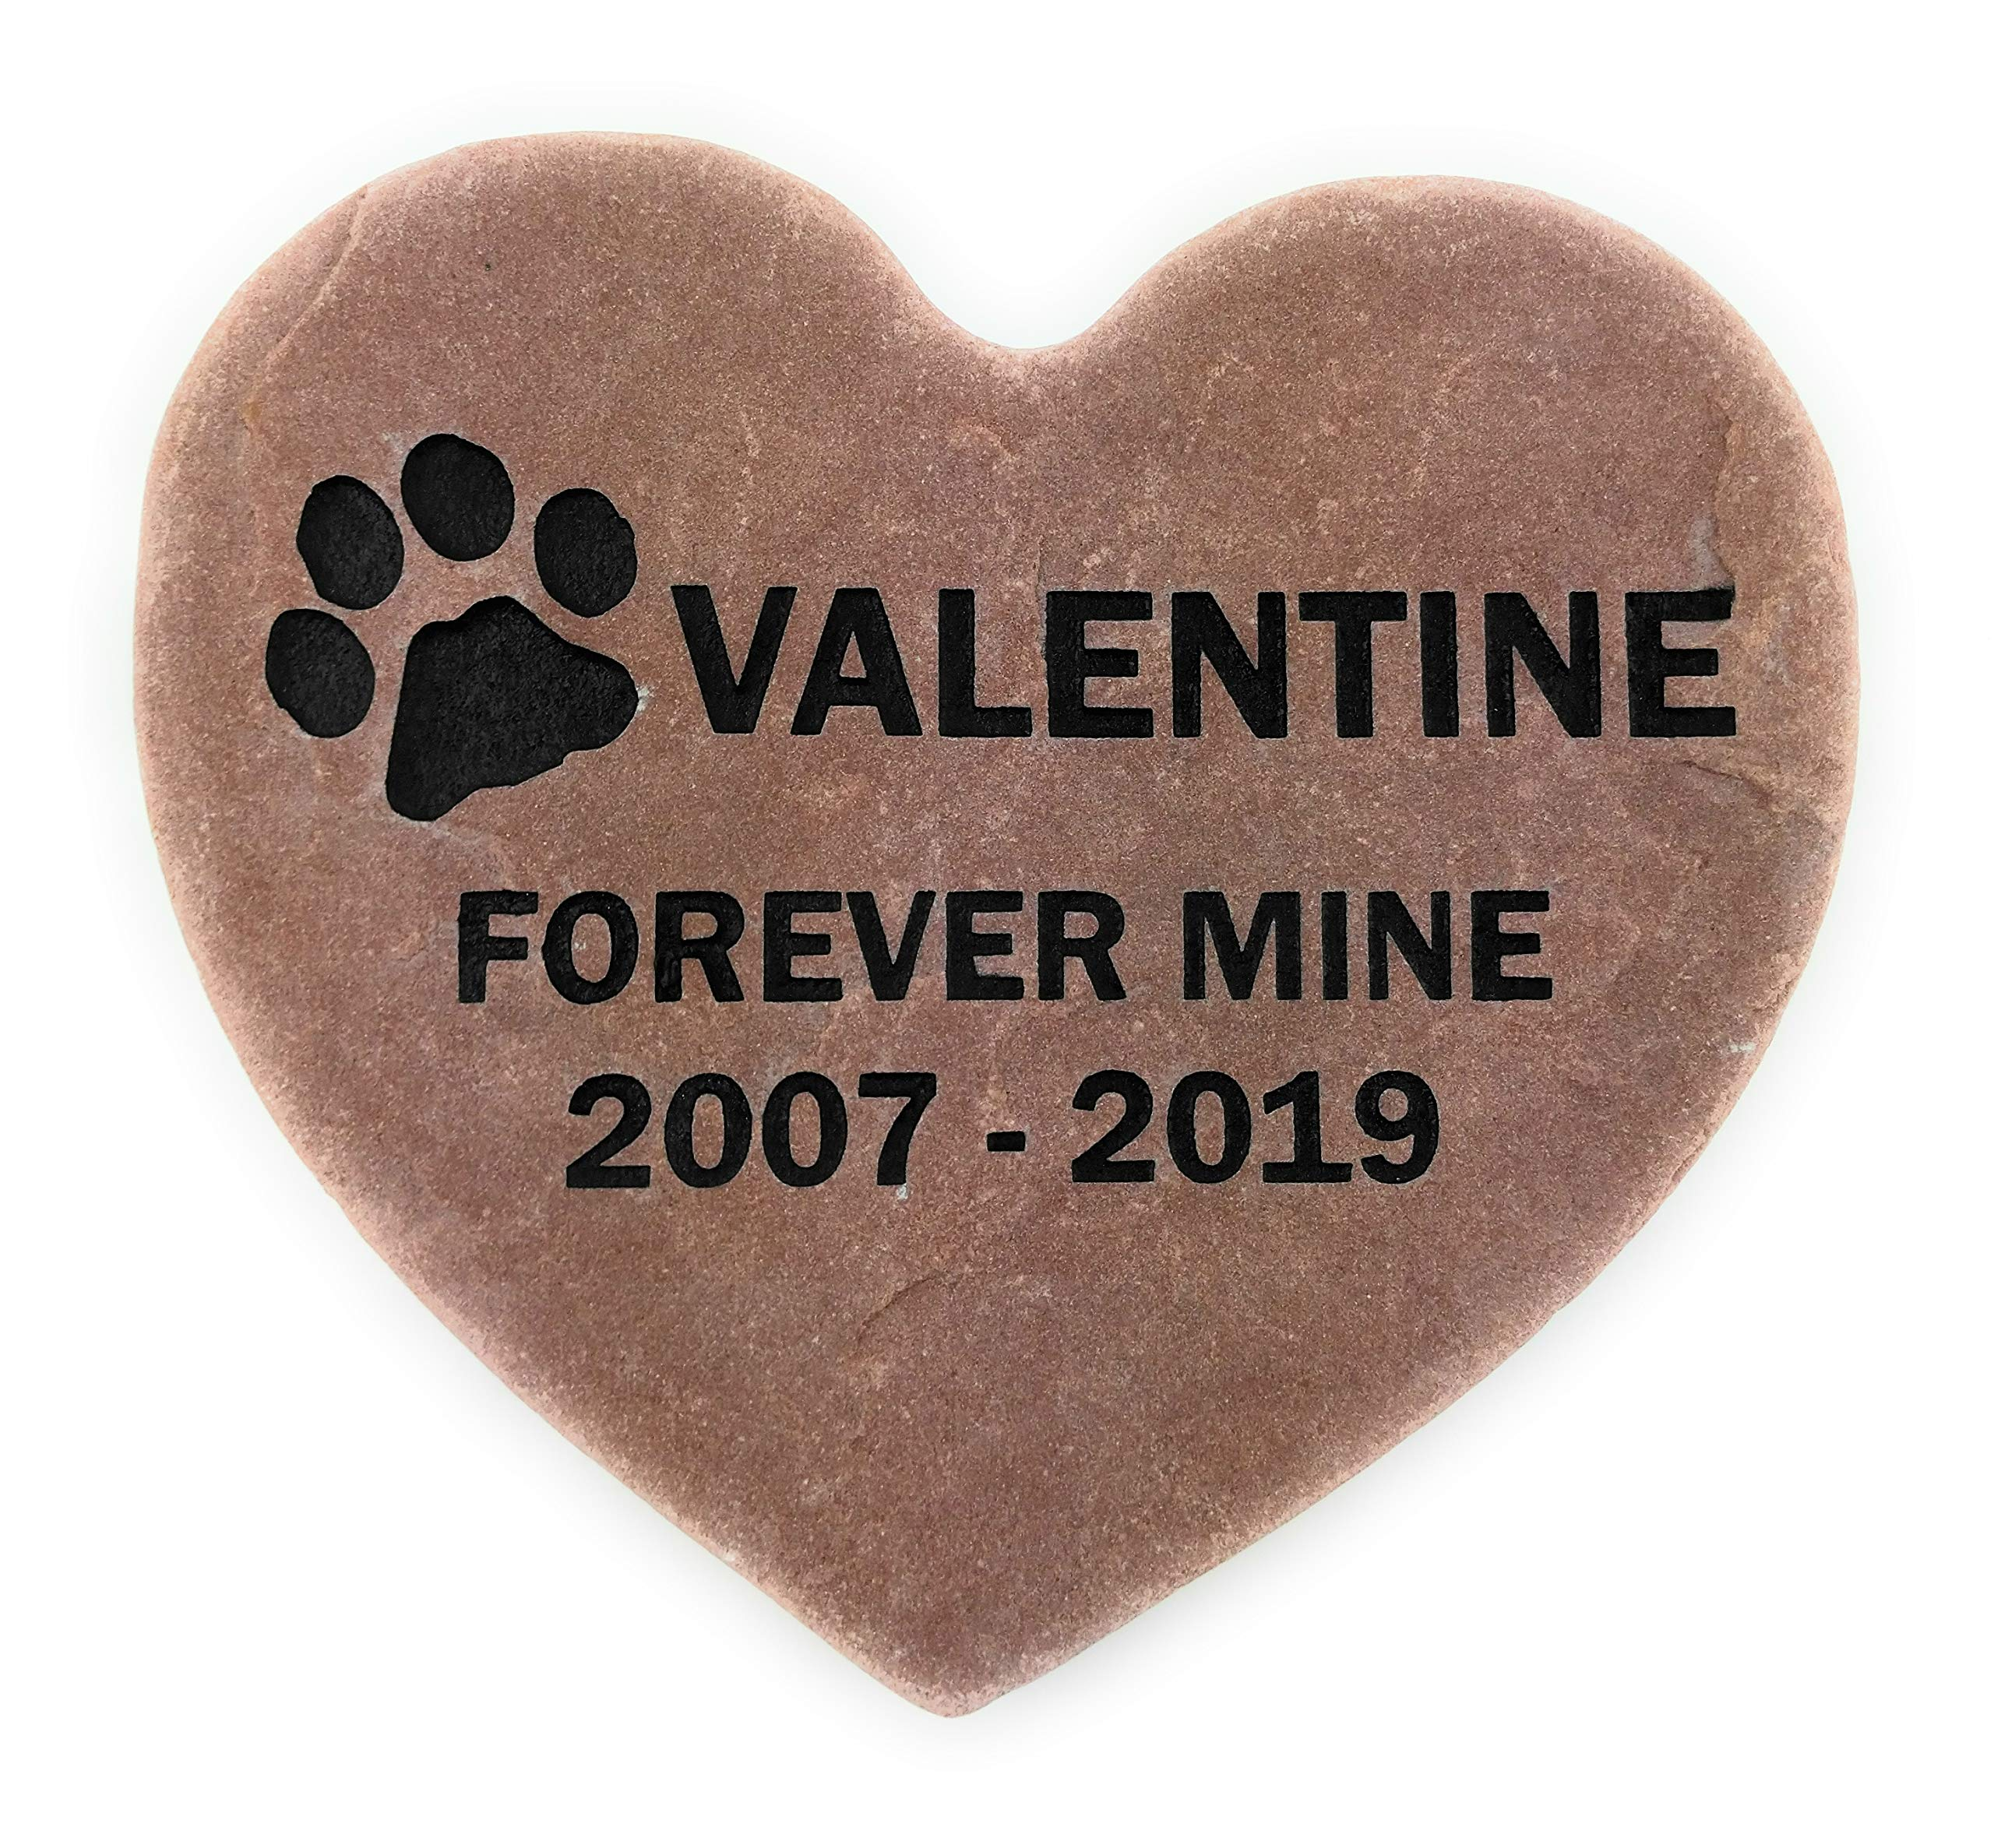 GraphicRocks Personalized Pet Memorial Grave Marker Garden Stone 8 inch Natural Red Stone Heart by GraphicRocks